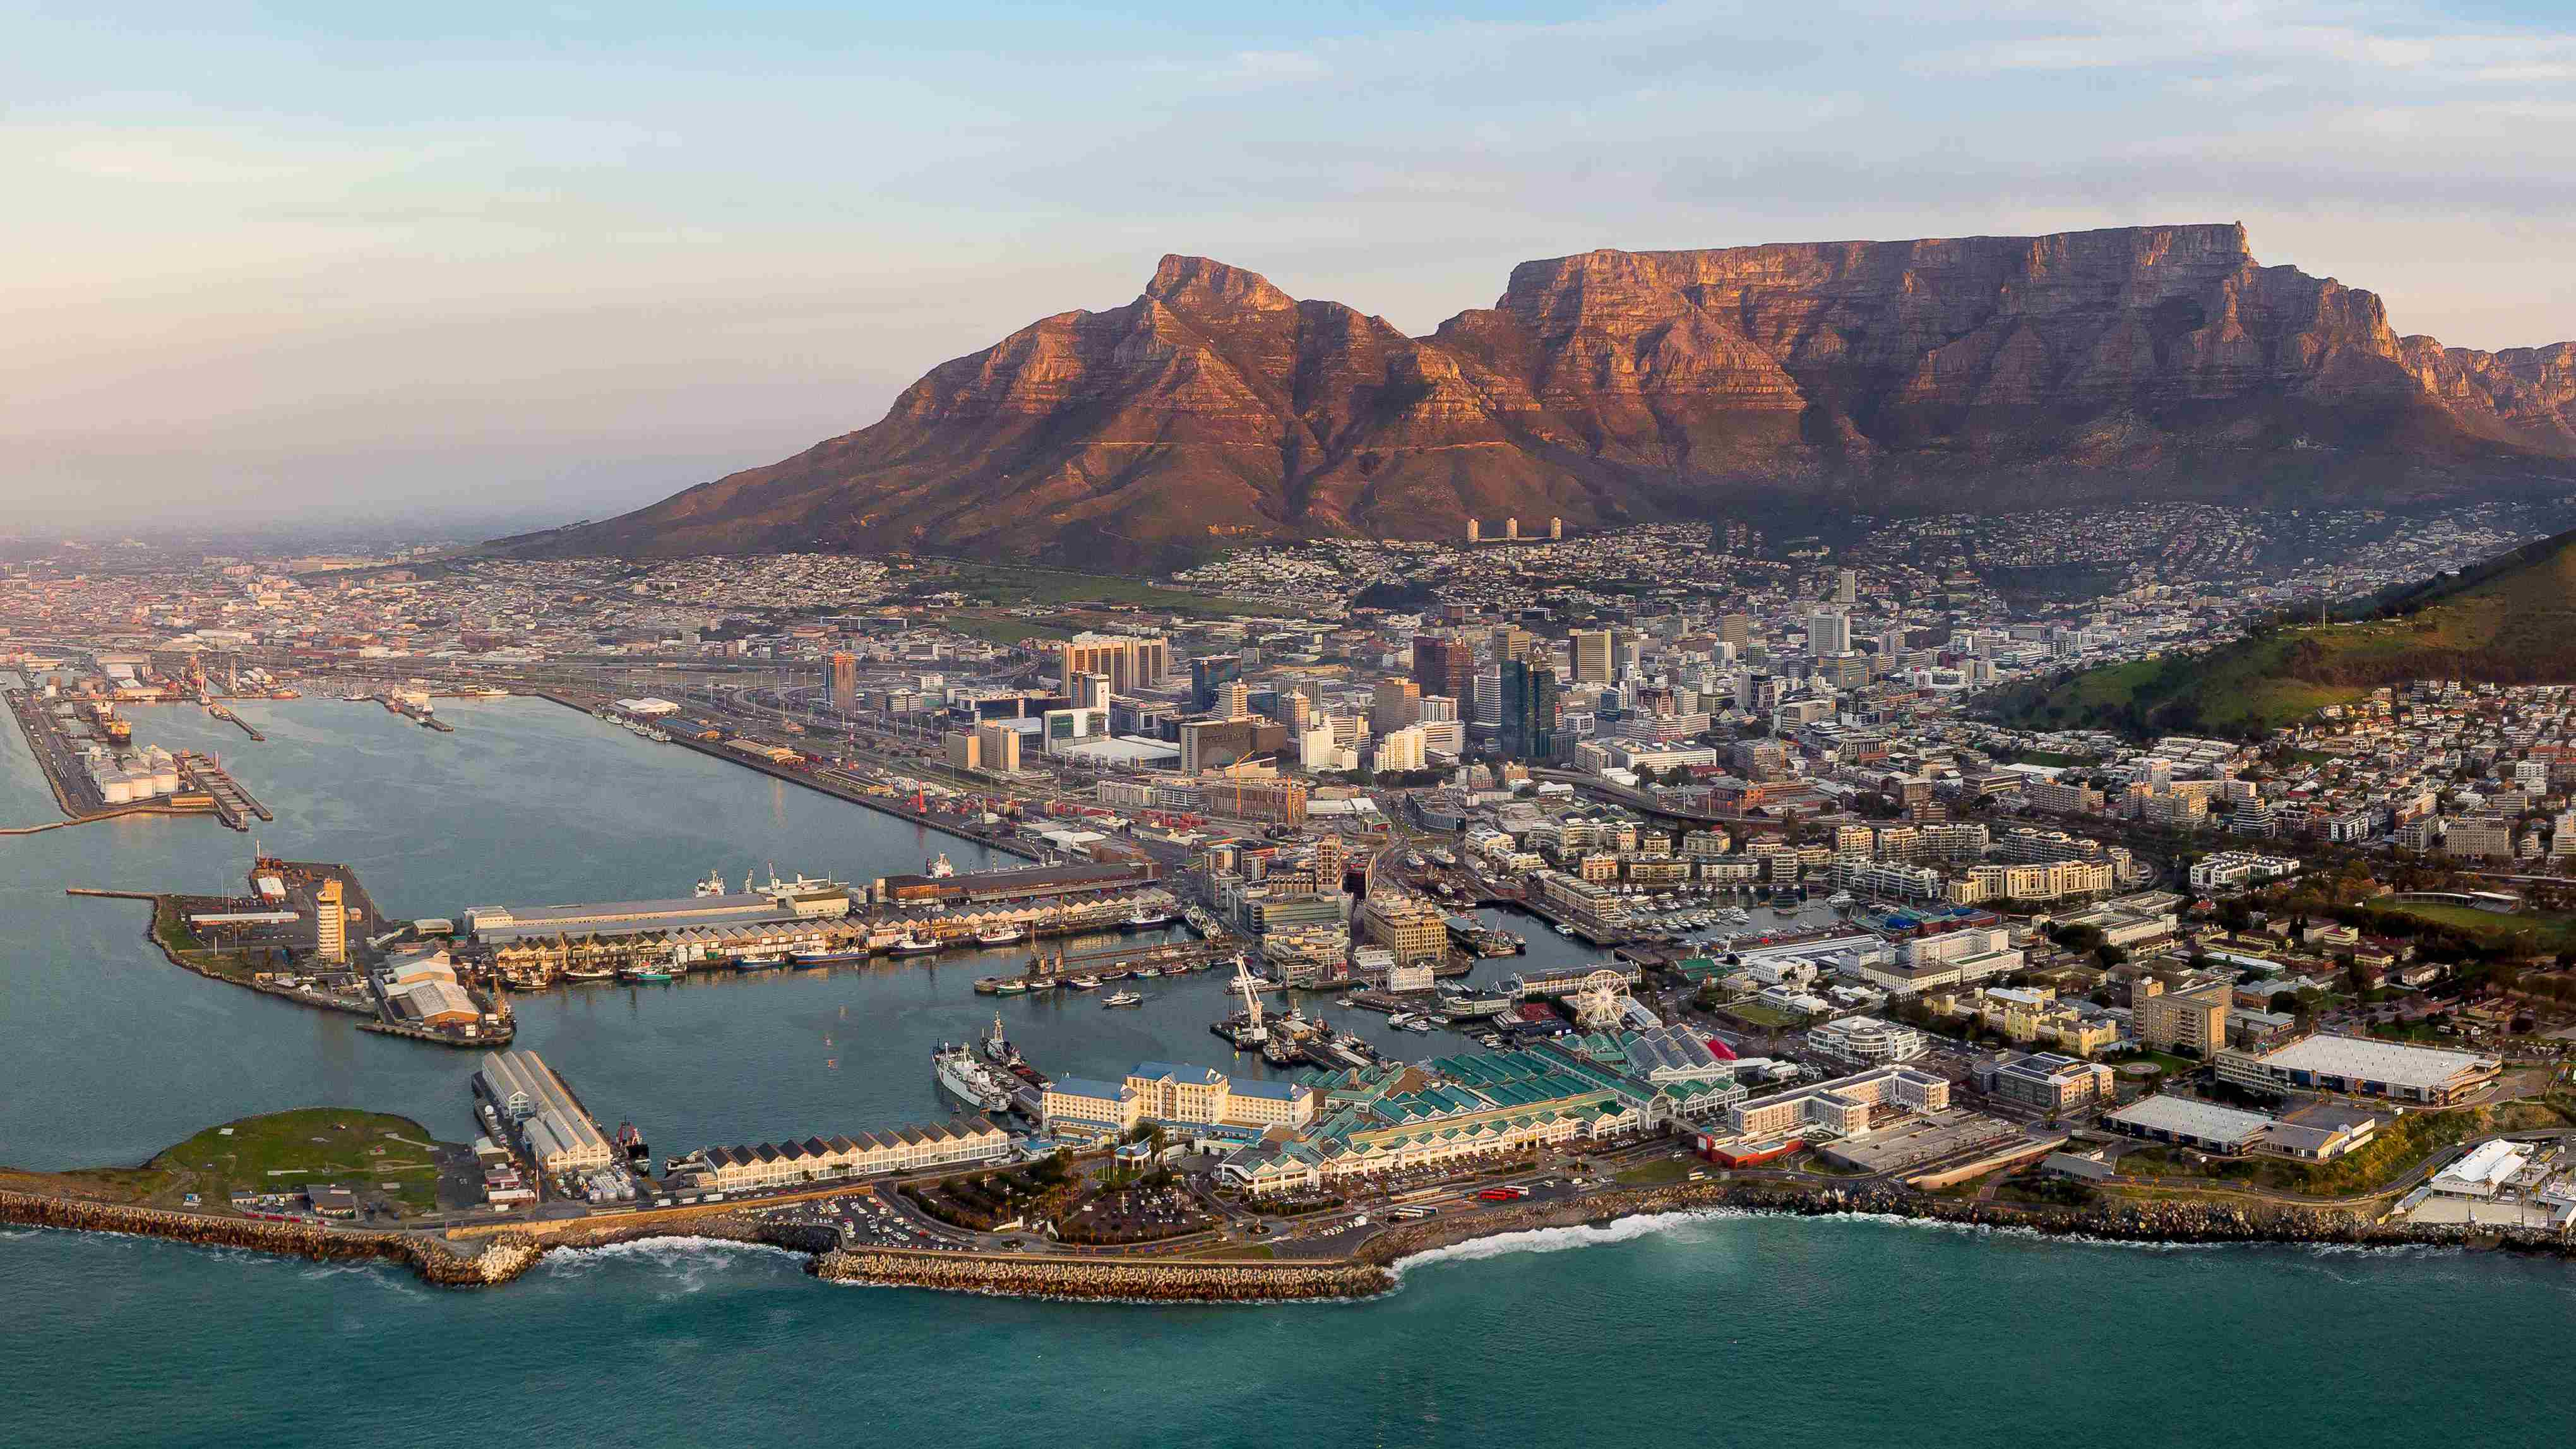 The allure of Cape Town